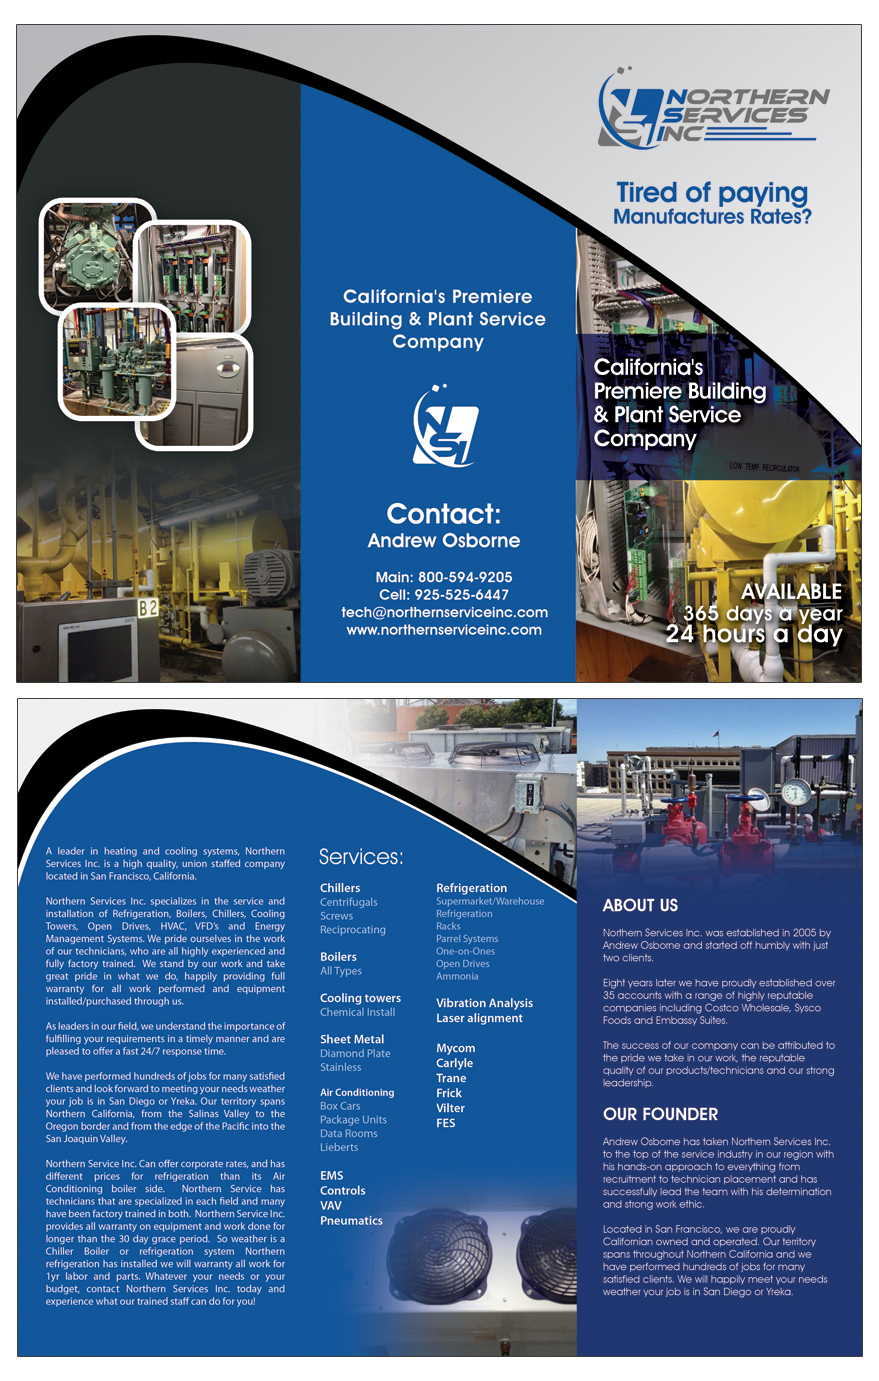 HVAC Company Brochure Design  HVAC Website Design